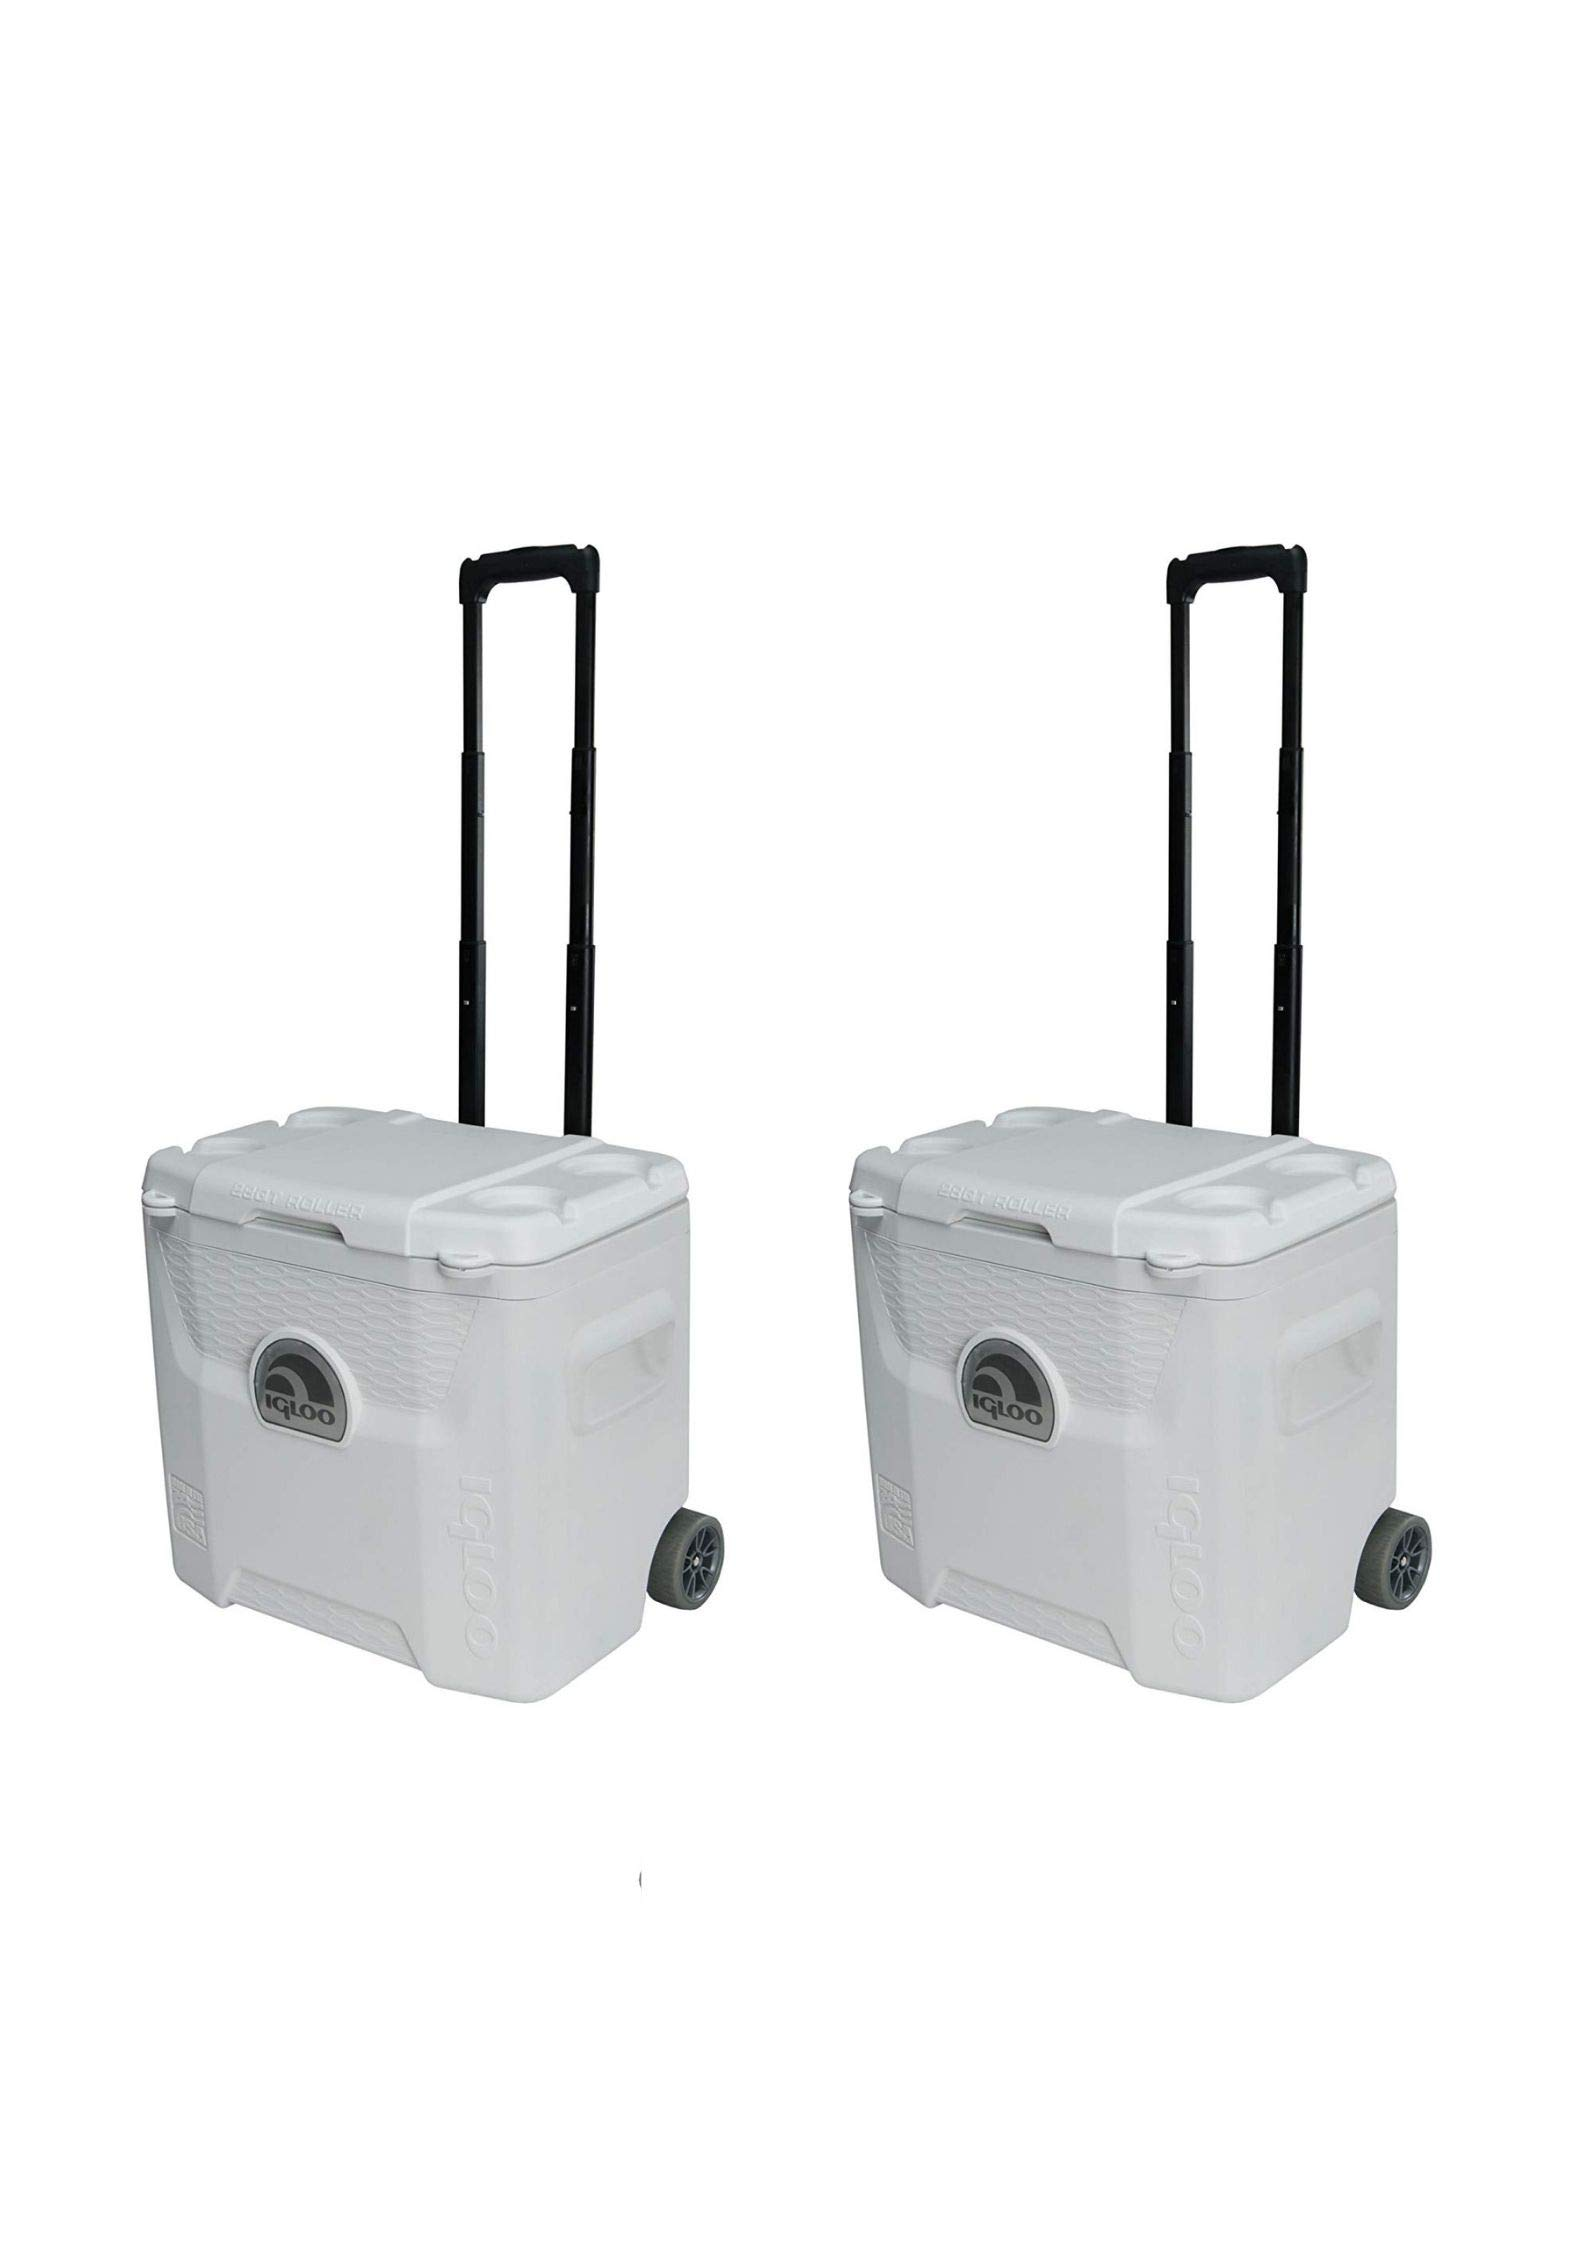 Igloo White 42 Can Marine Quantum Cooler with Wheels (28 Quart/Pack of 2)